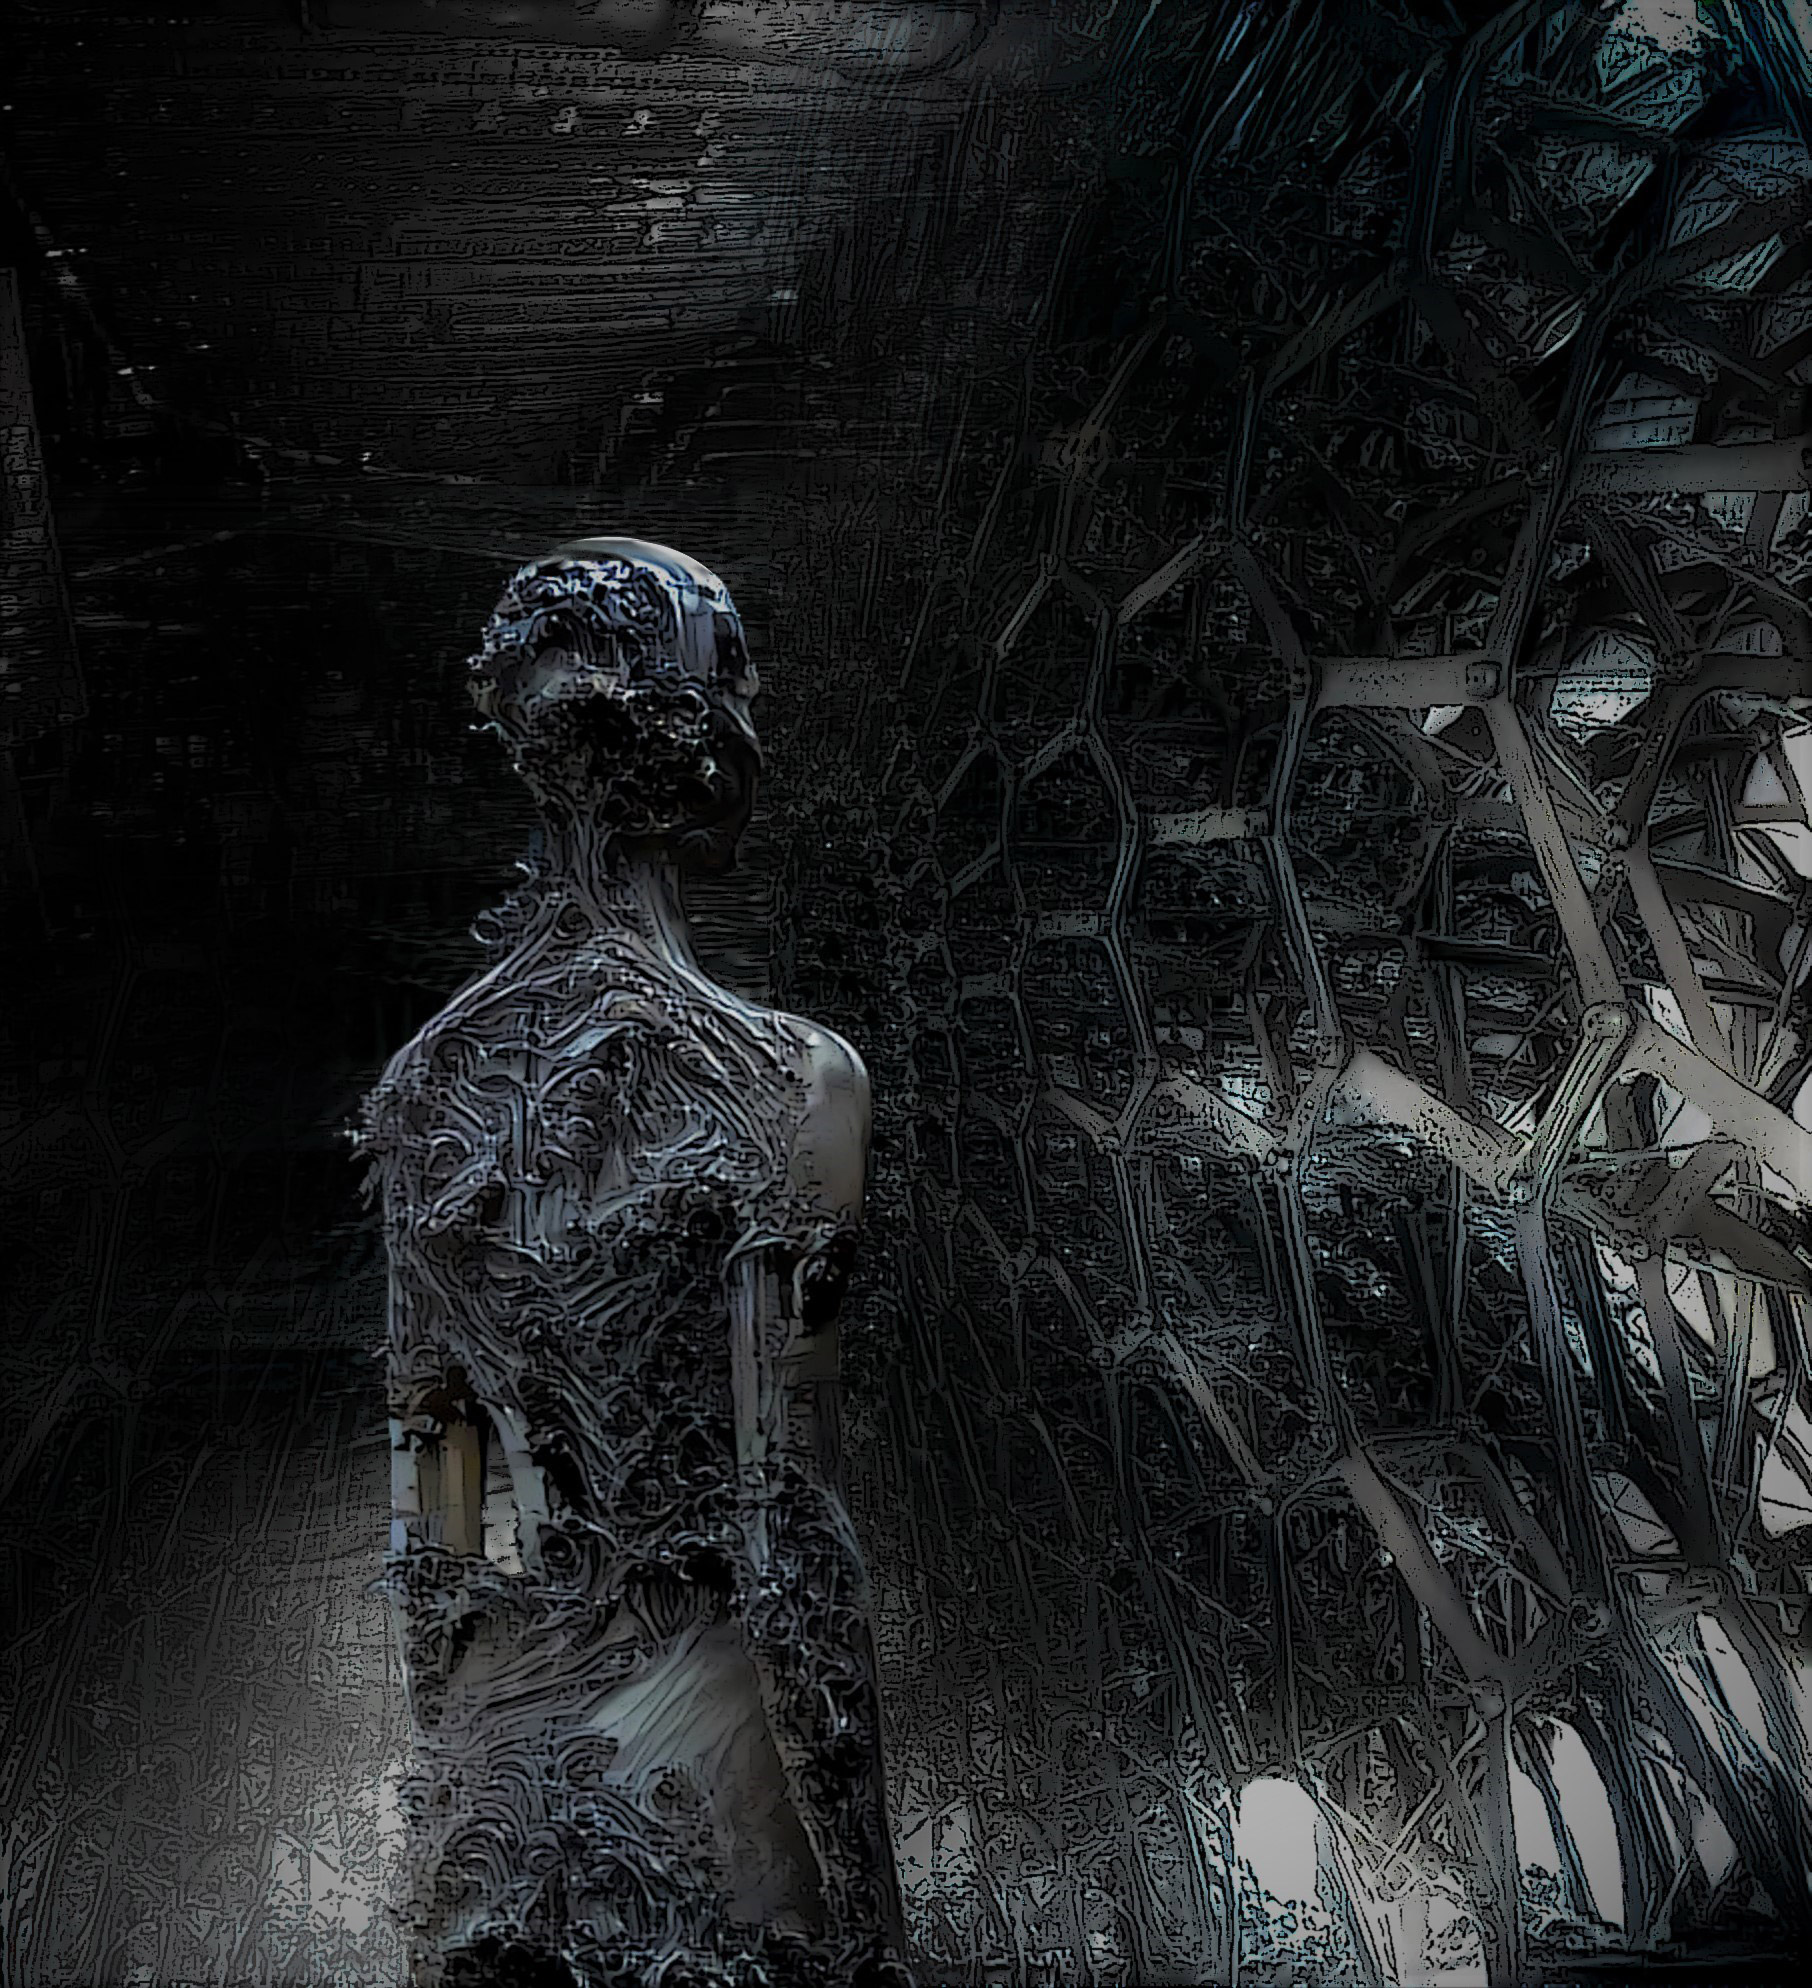 The Sci-Fi & Fantasy Paintings of Karl Sisson